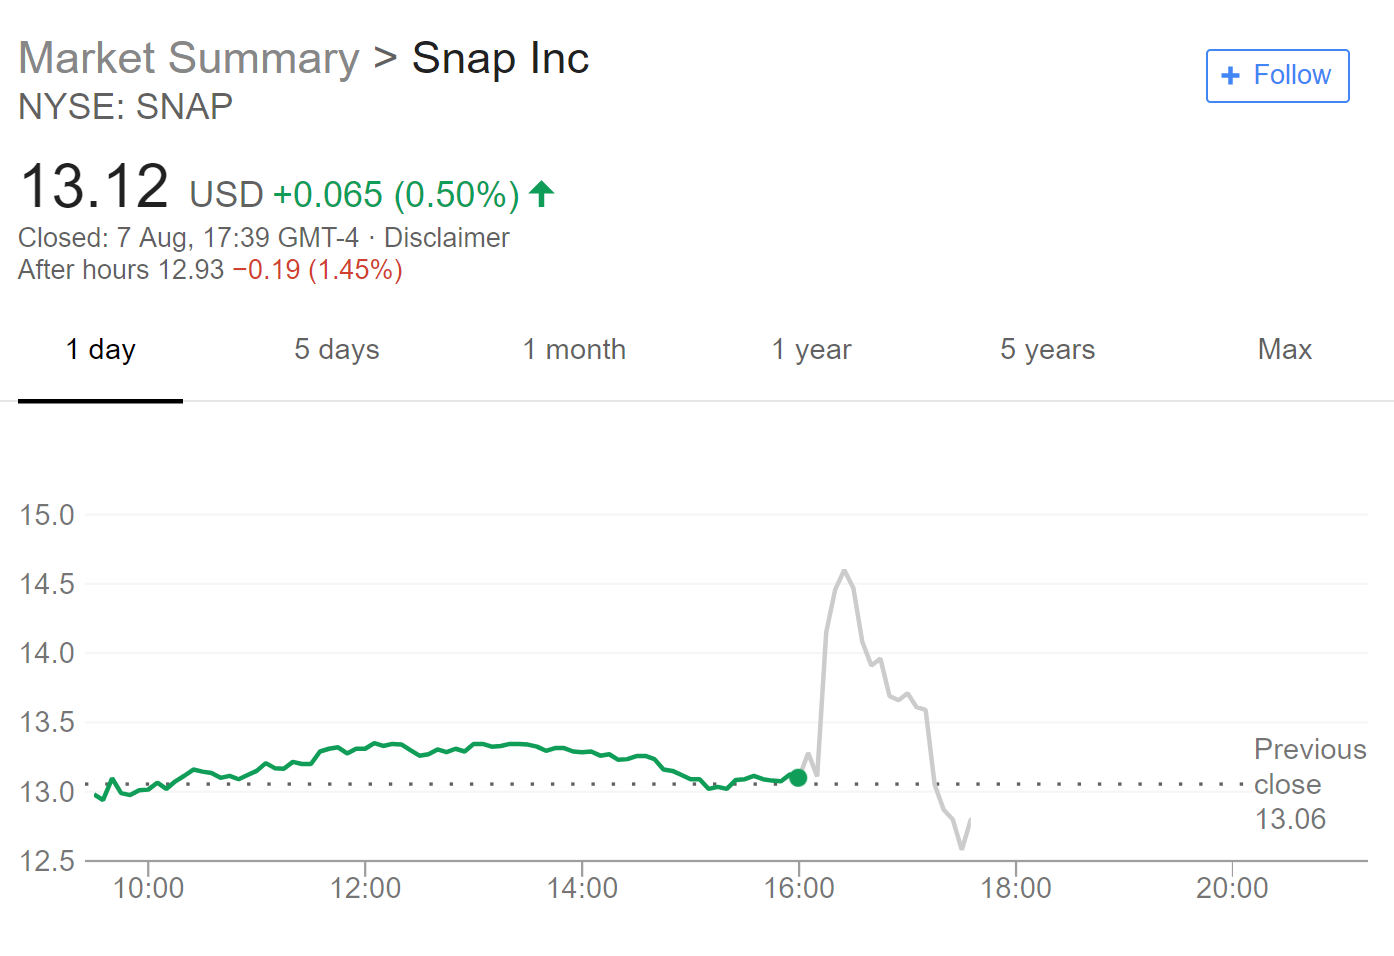 Snapchat lost 3 million daily users in the past three months